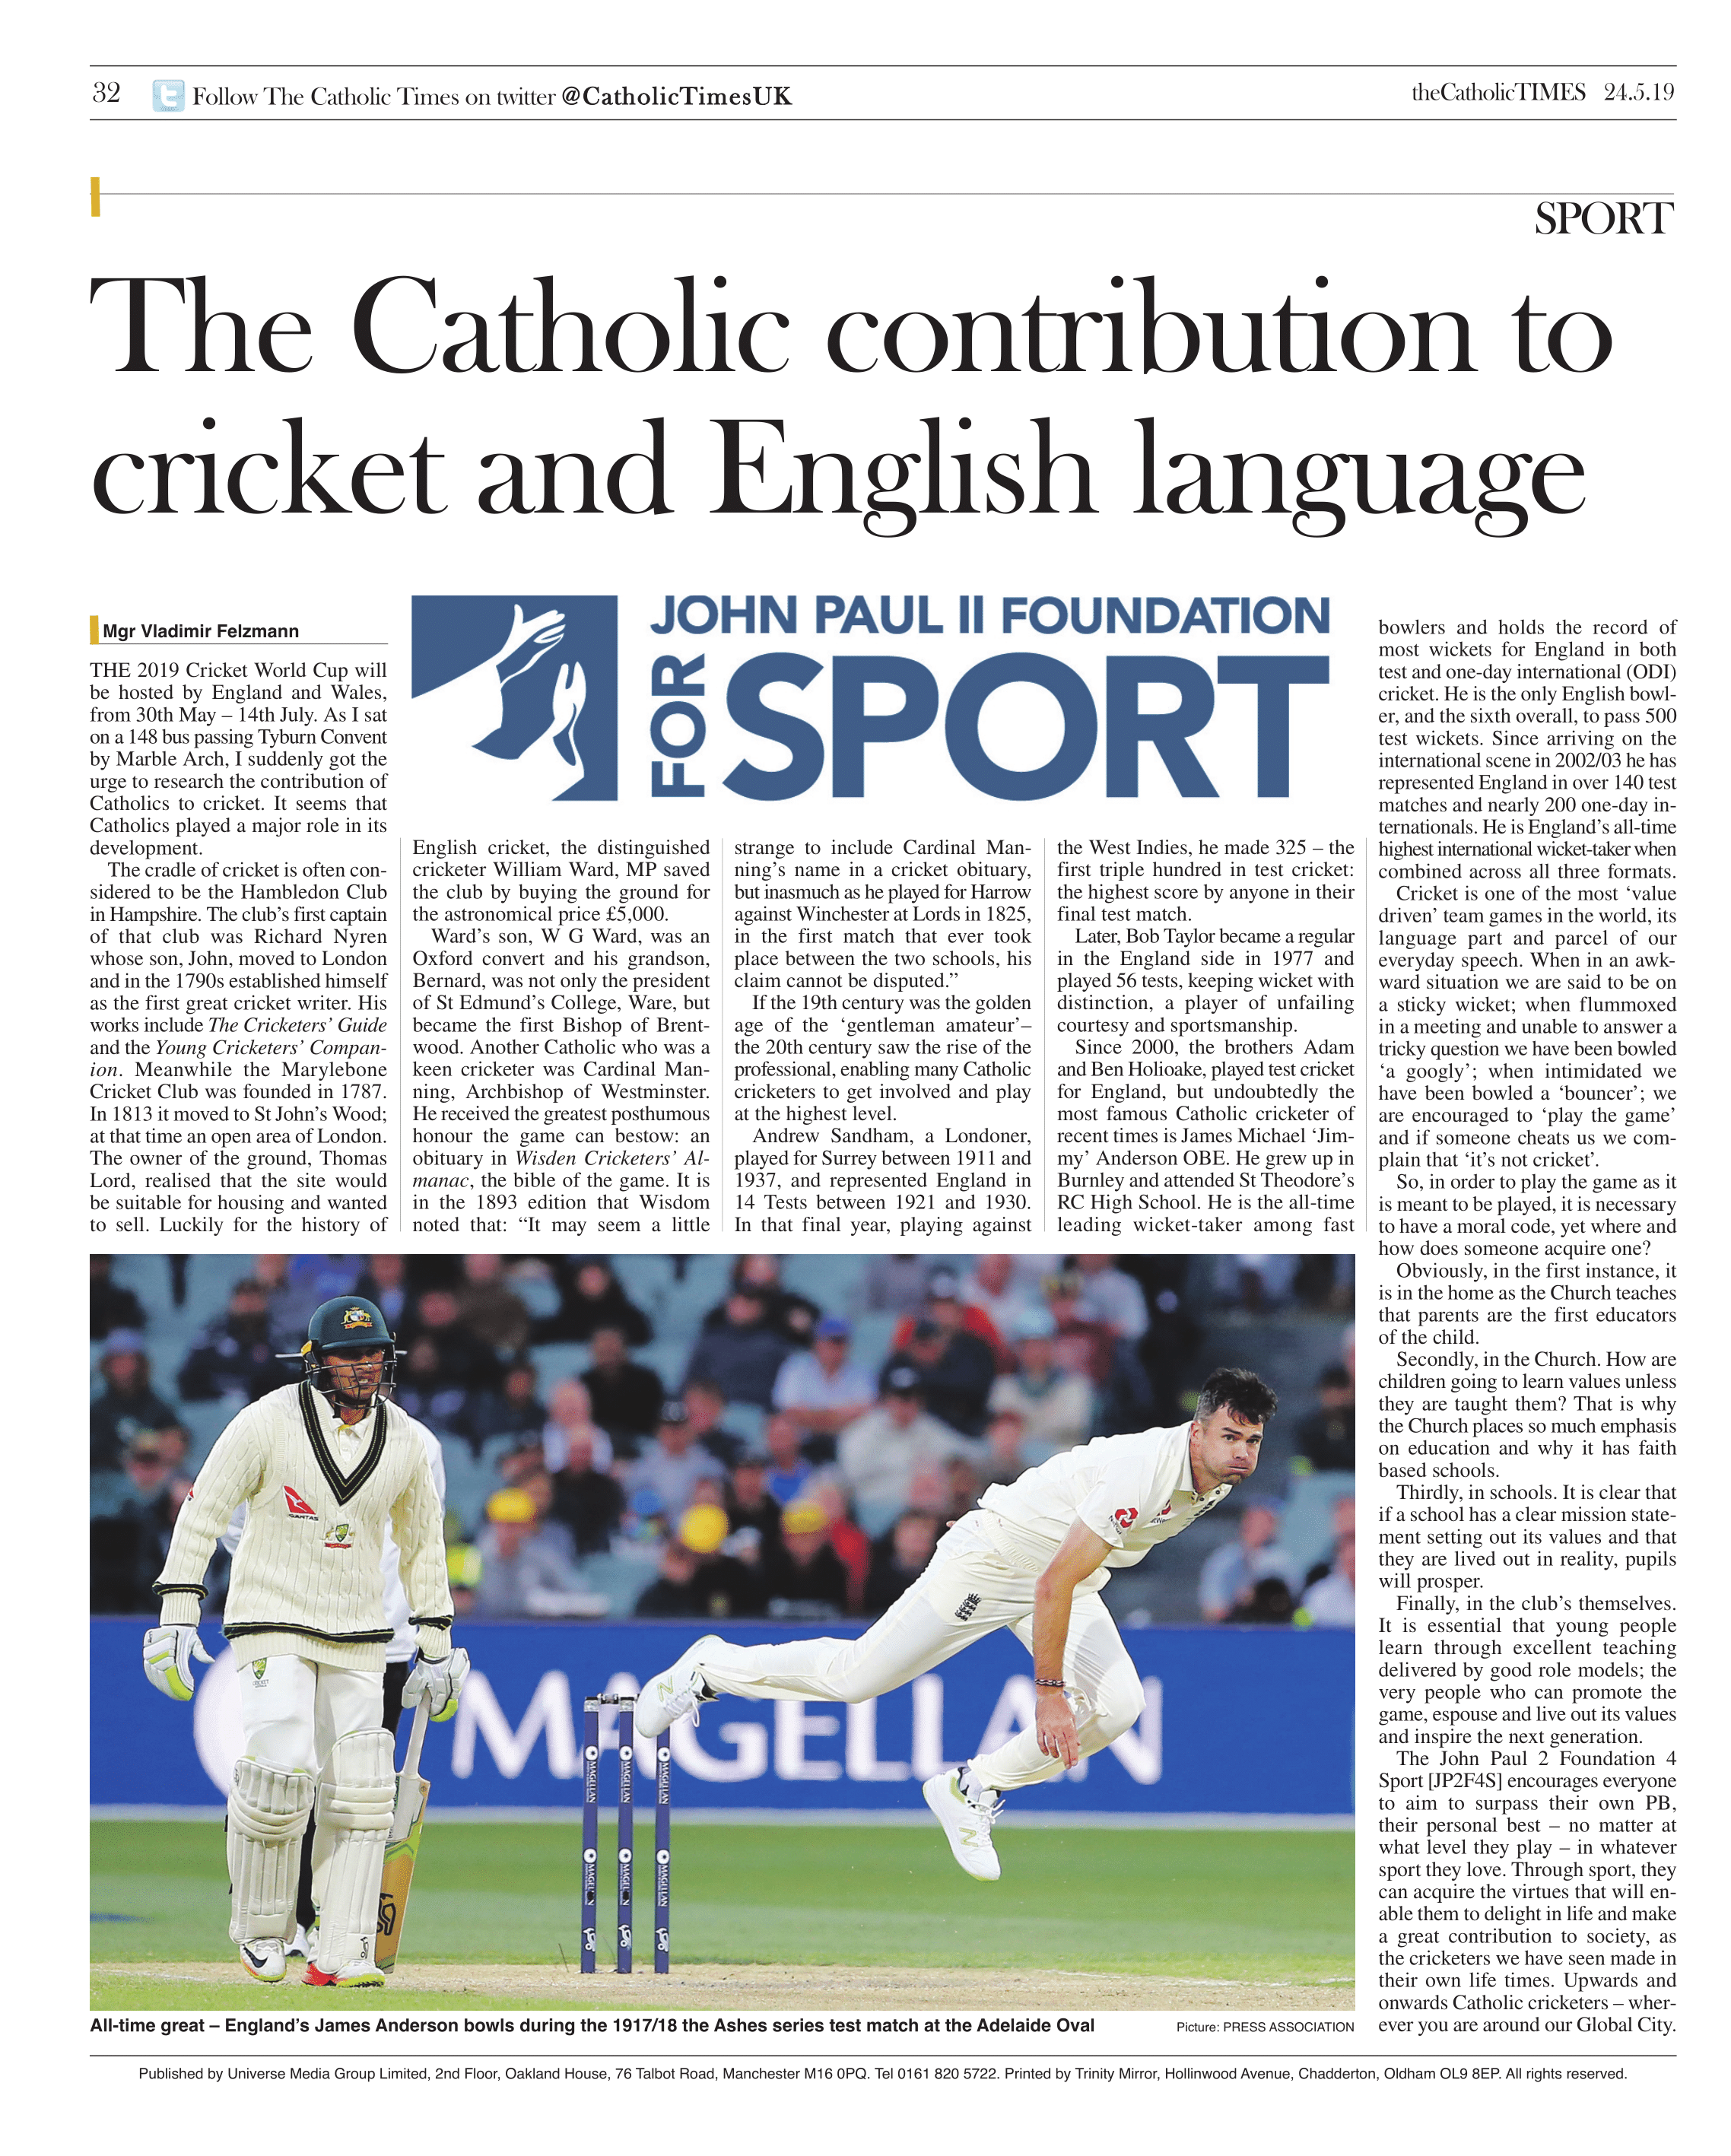 First published in theCatholicTimes on 24/05/2019.